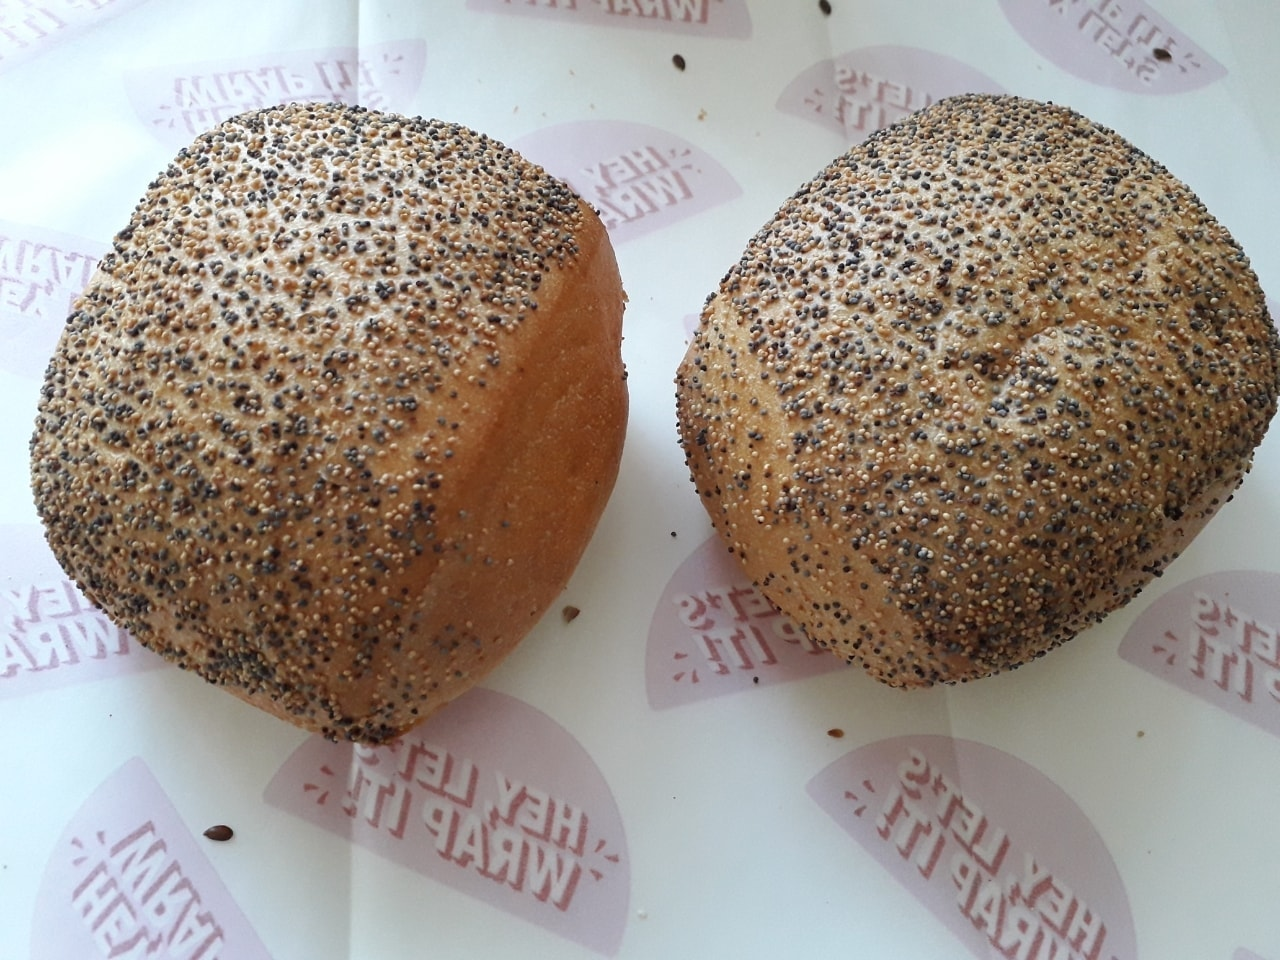 Poppy seeds breads from Lindquists